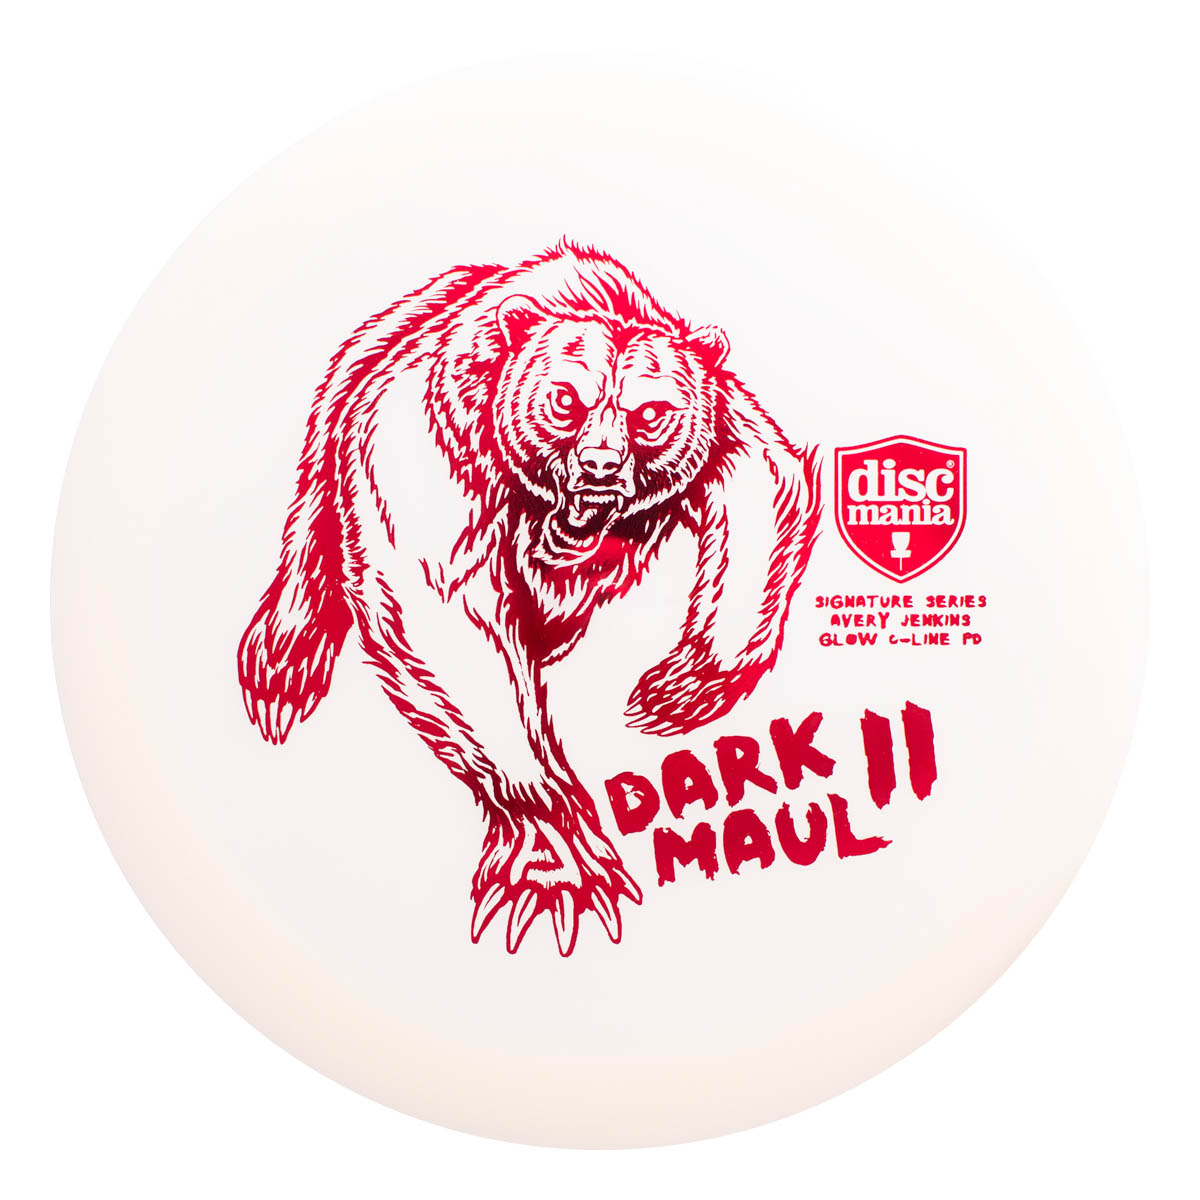 DISCMANIA C-LINE COLOR GLOW PD AVERY JENKINS DARK MAUL 2 1